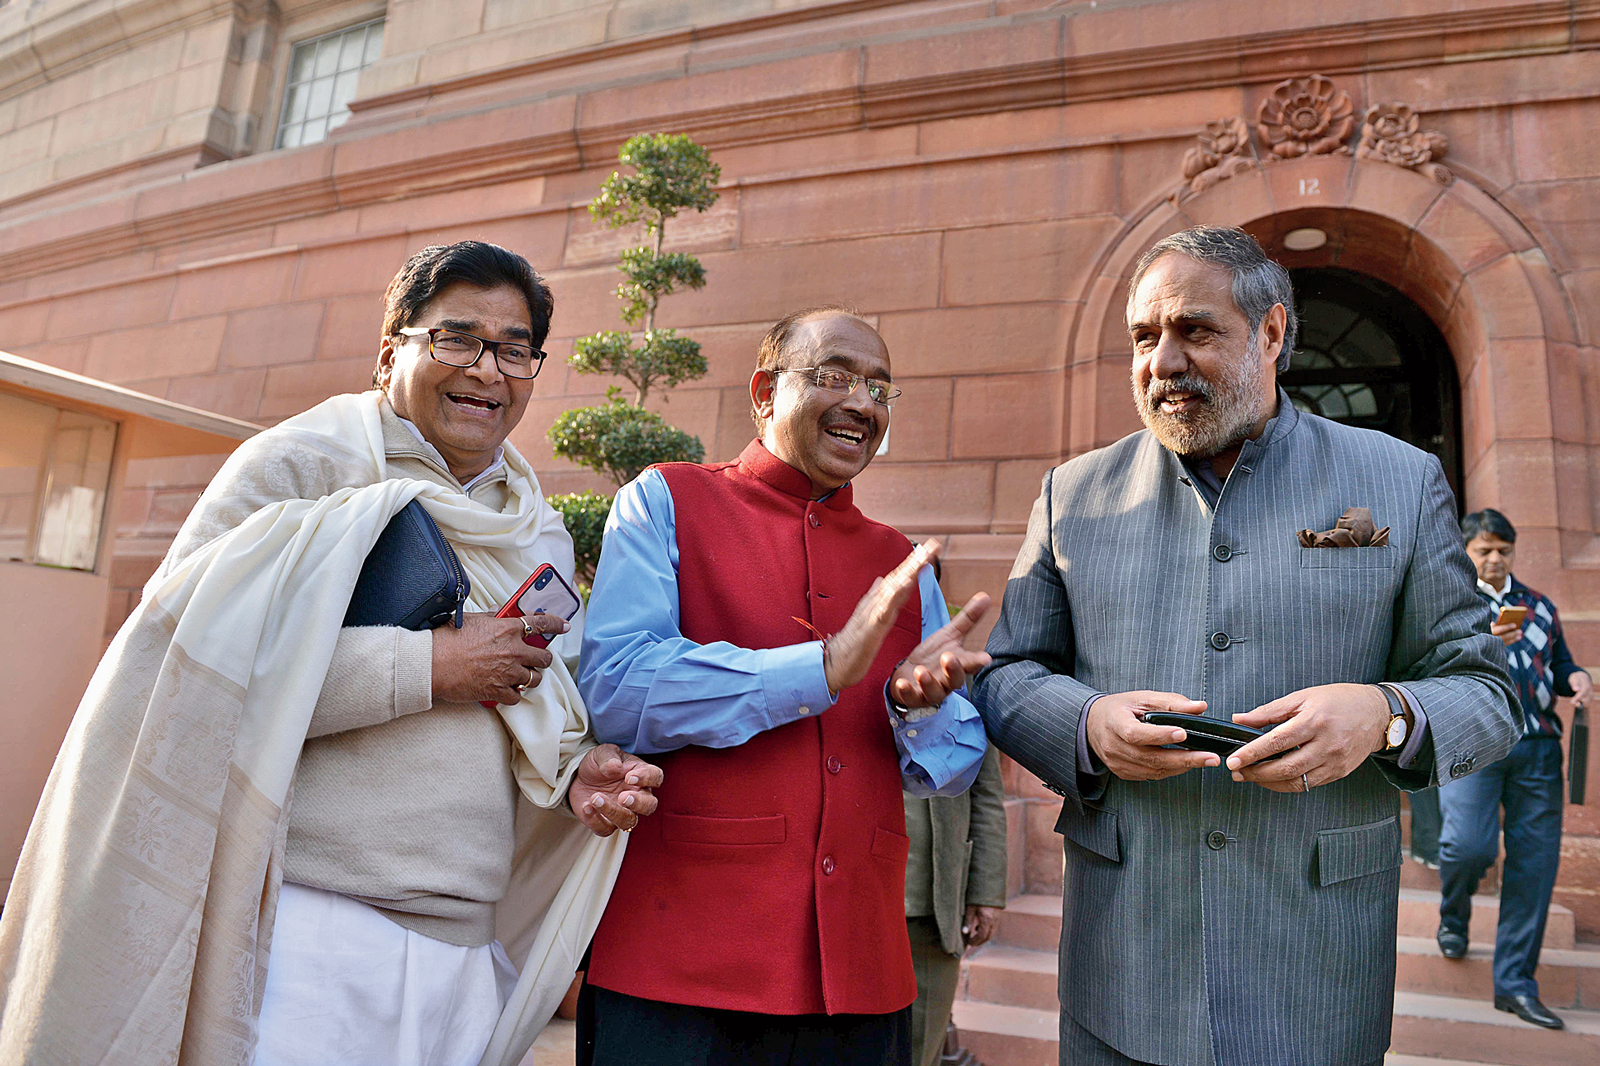 Ramgopal Yadav of the Samajwadi Party, Vijay Goel of the BJP and Anand Sharma of the Congress outside Parliament on Monday.